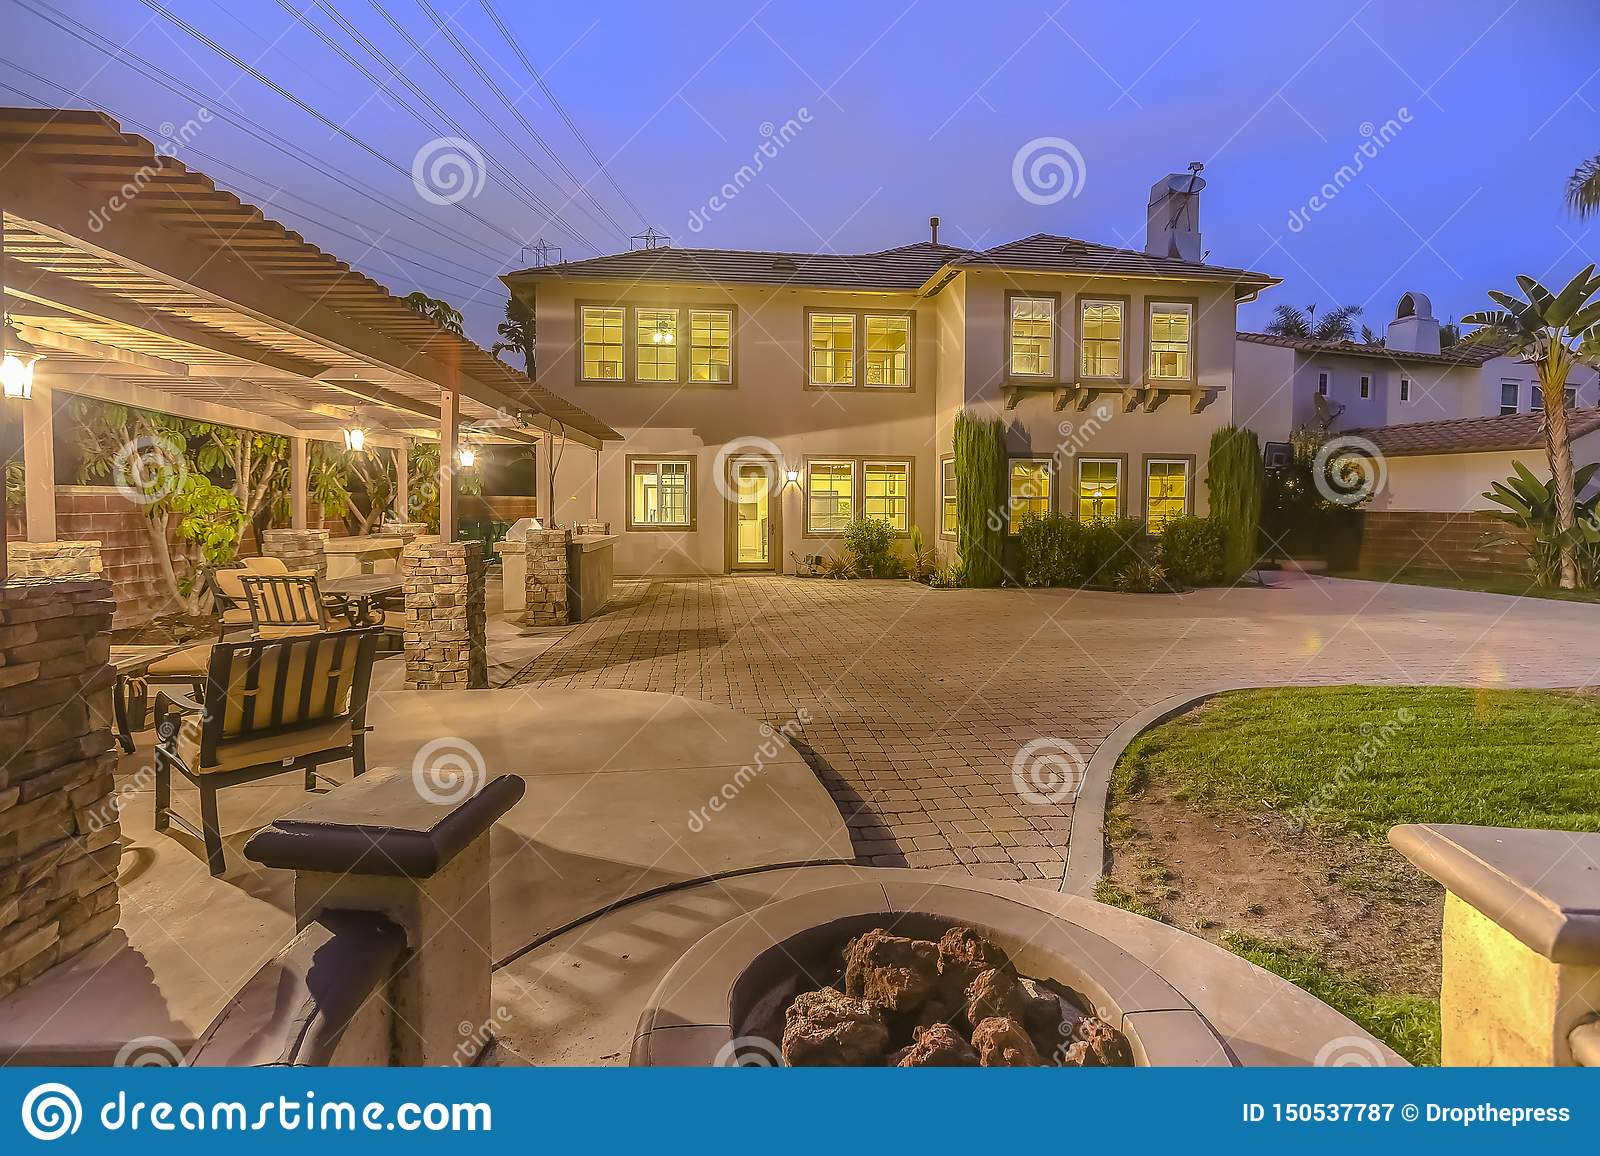 Illuminated House With A Patio Accomodating An Outdoor Dining Area And Fire Pit Stock Image Image Of Area Trees 150537787